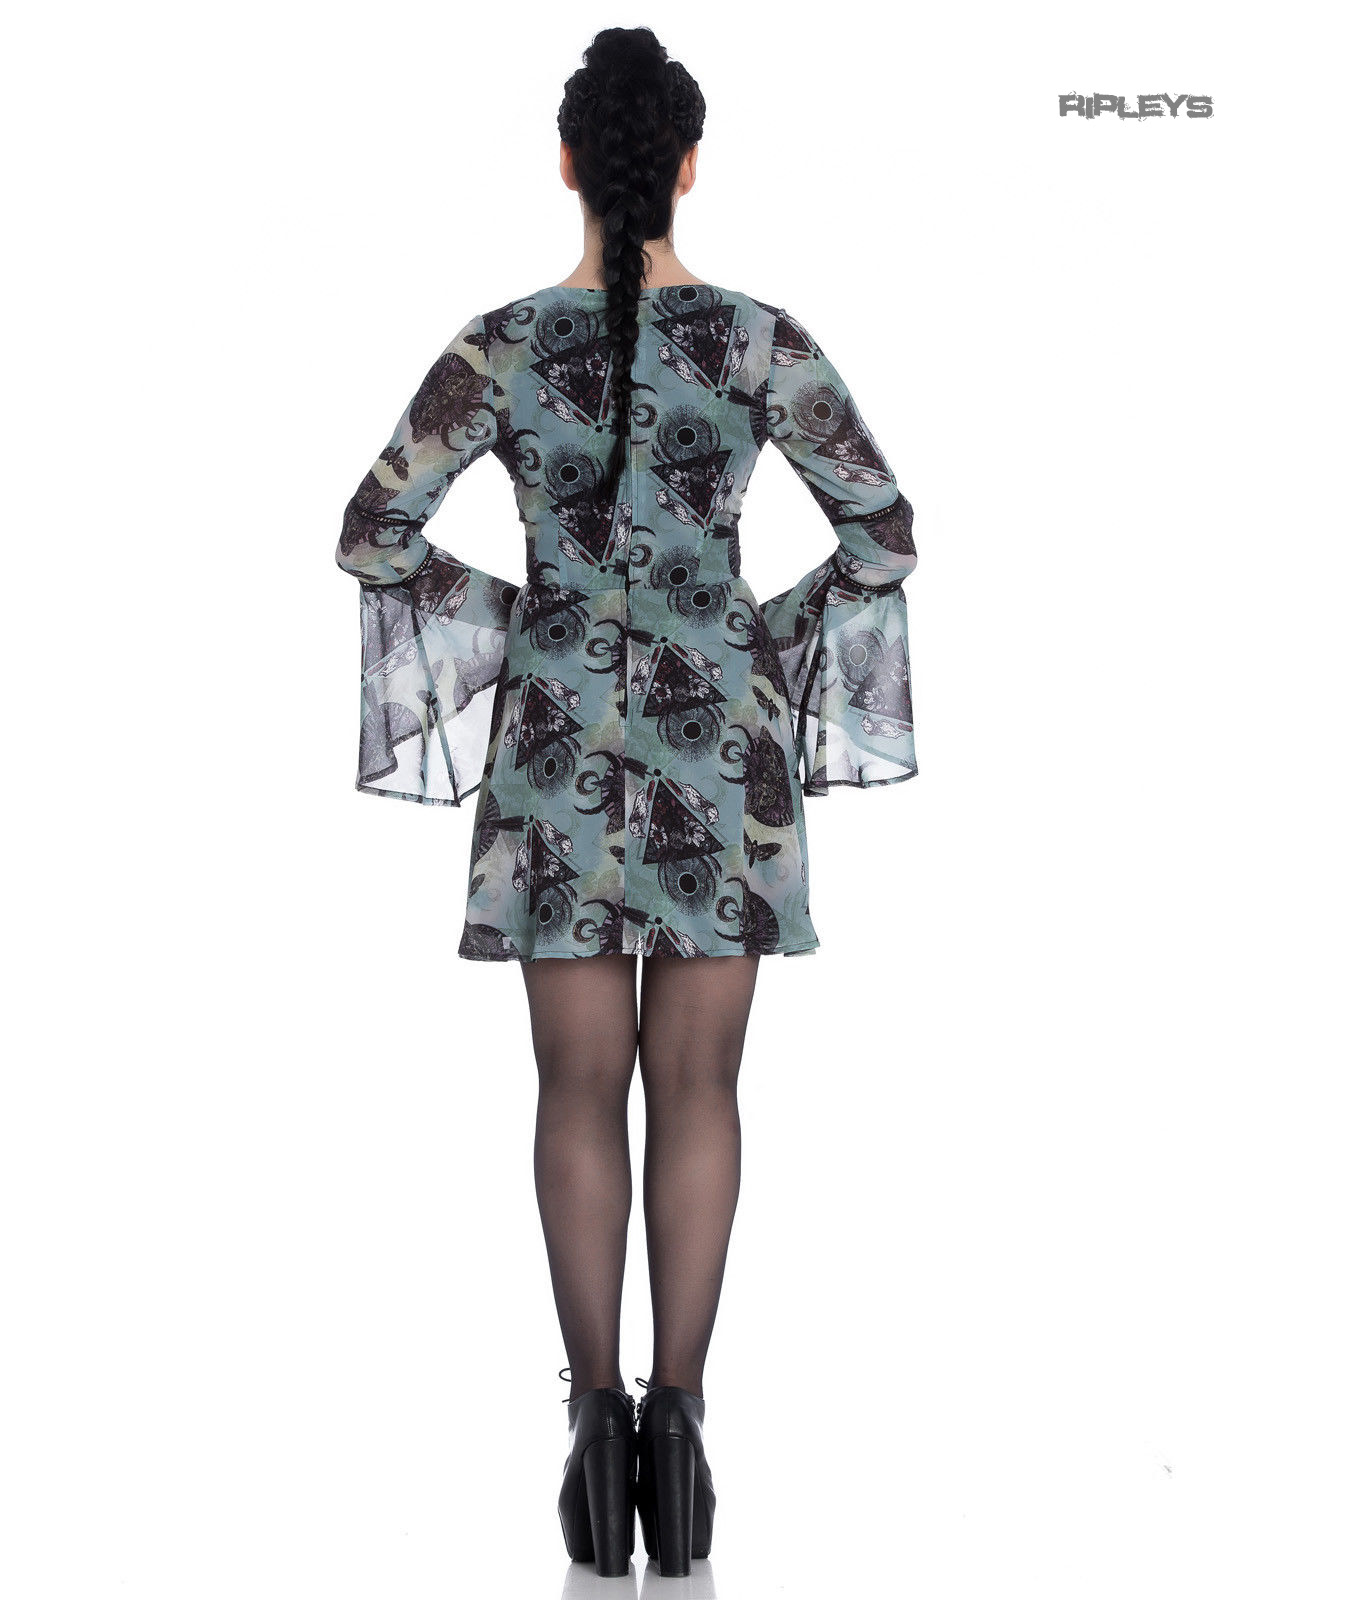 Hell-Bunny-Alchemy-Goth-Floaty-Witch-Mini-Dress-AFTER-DEATH-Teal-Green-All-Sizes thumbnail 8